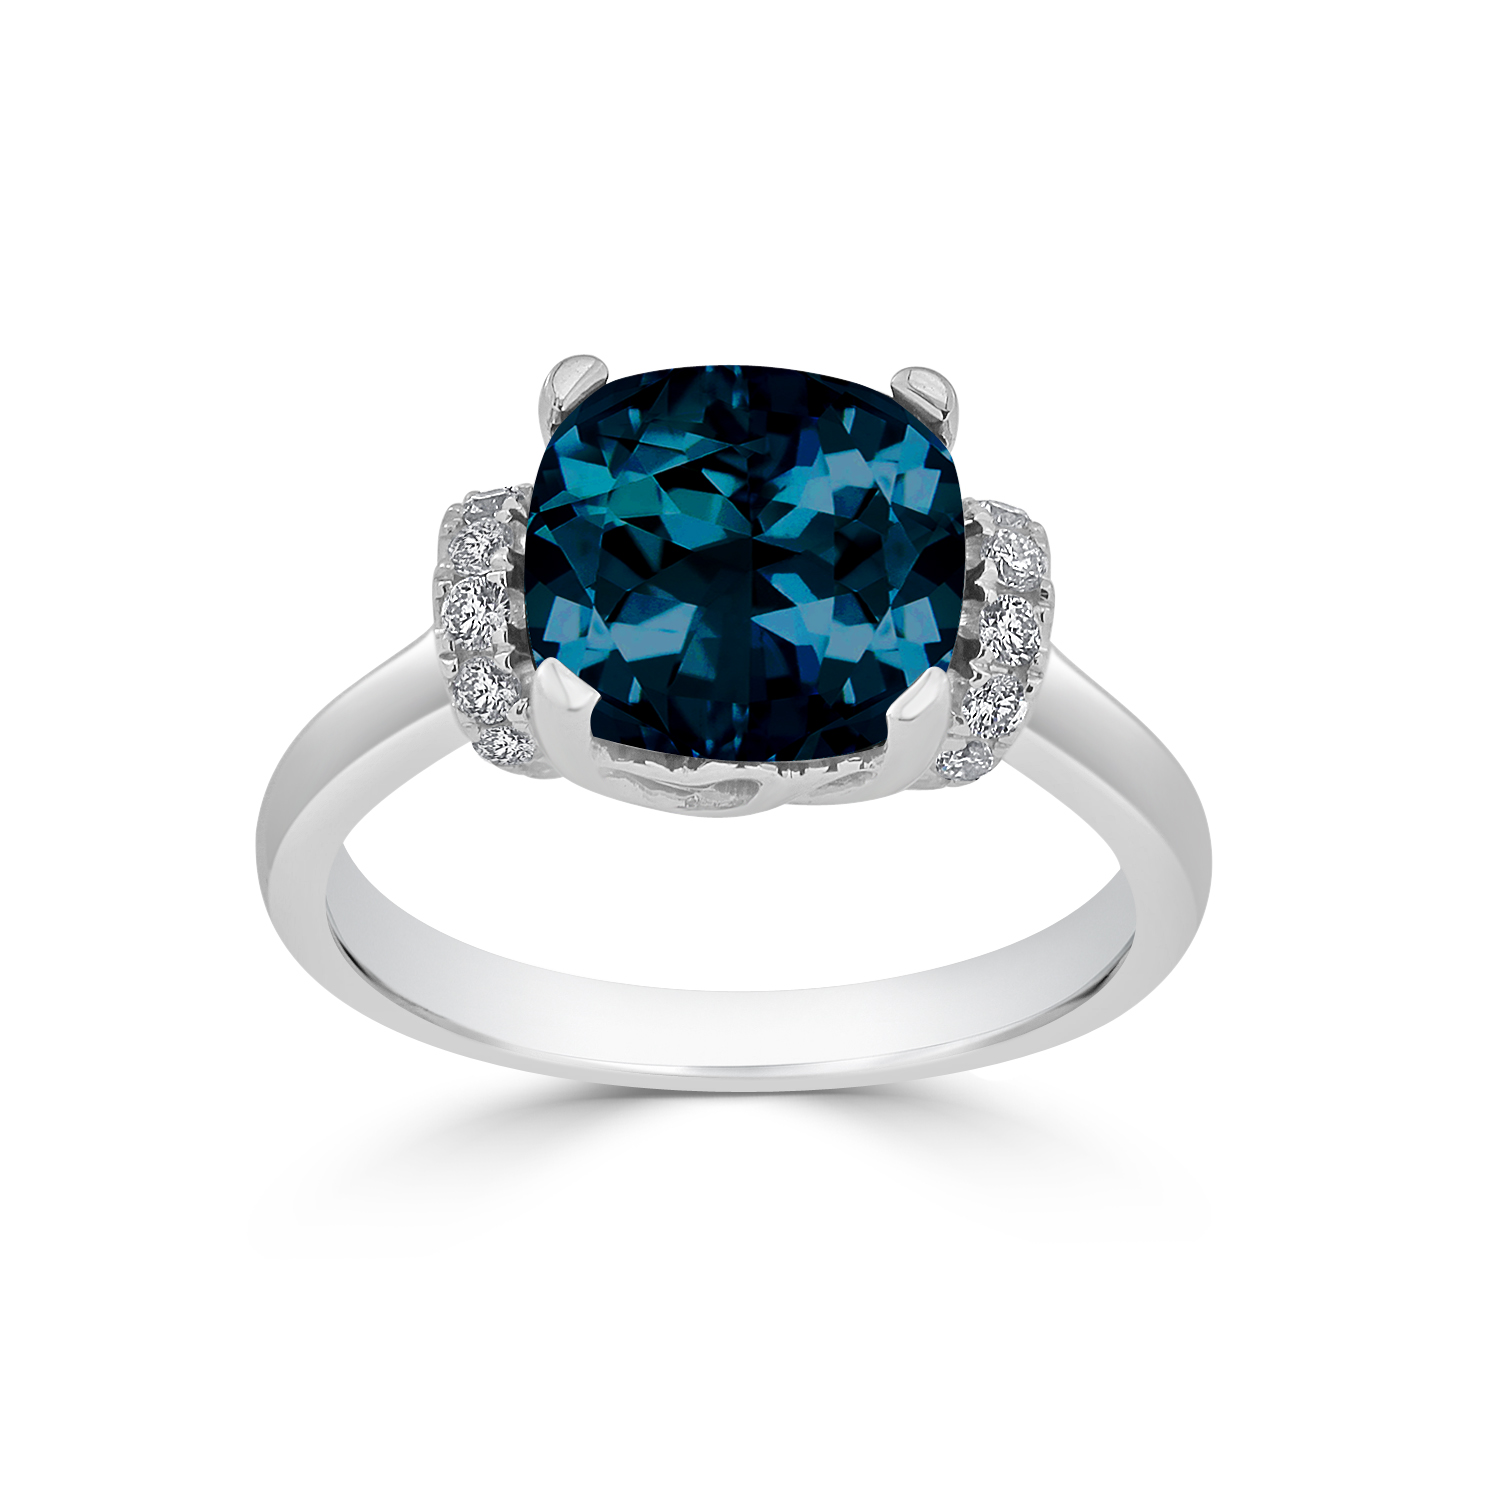 Halo London Blue Topaz Diamond Ring in 14K White Gold with 3.30 carat Cushion London Blue Topaz